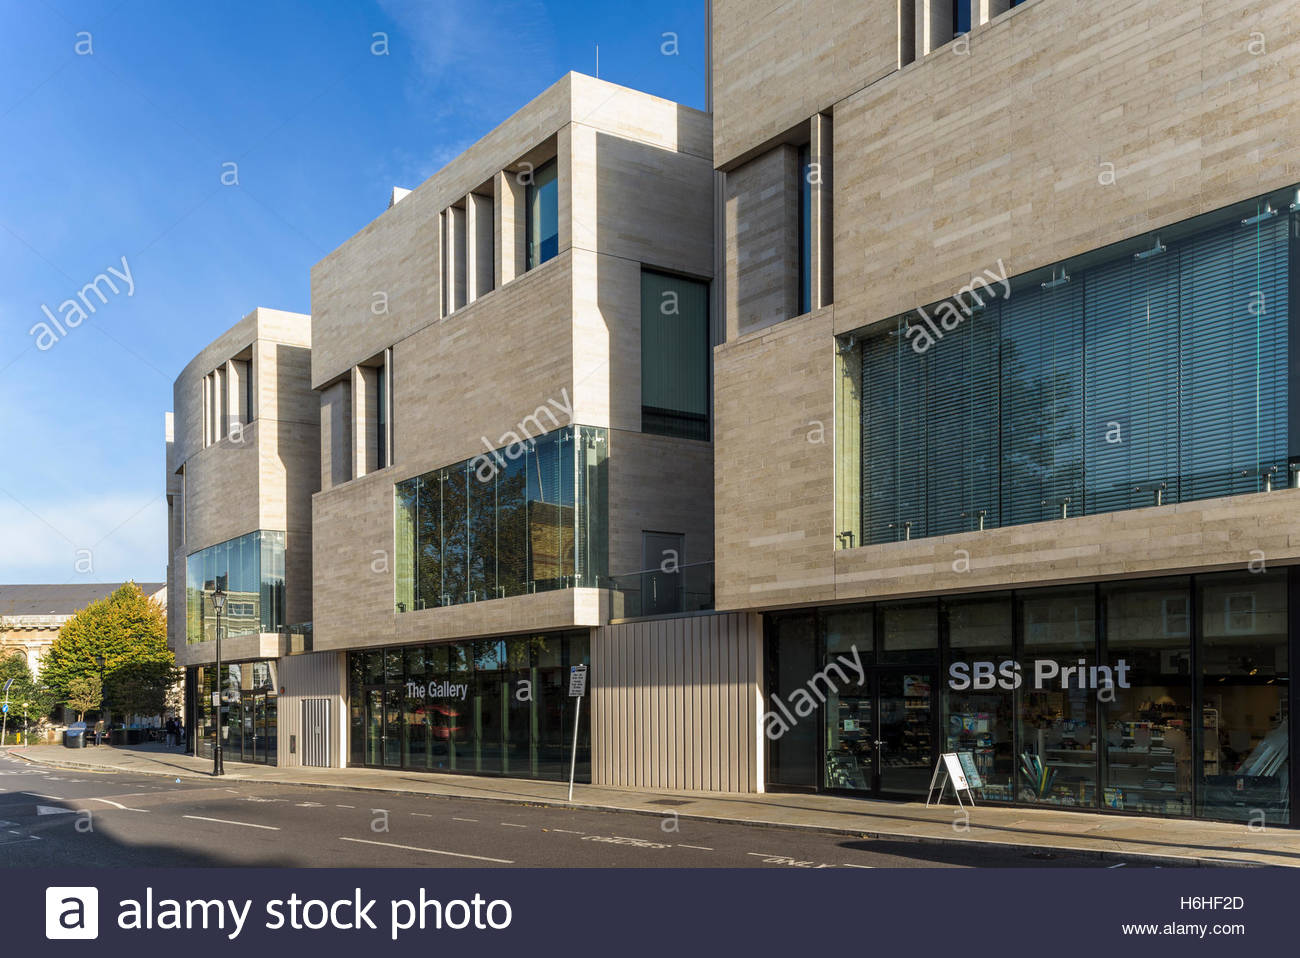 The Stockwell Building, University of Greenwich - Stock Image